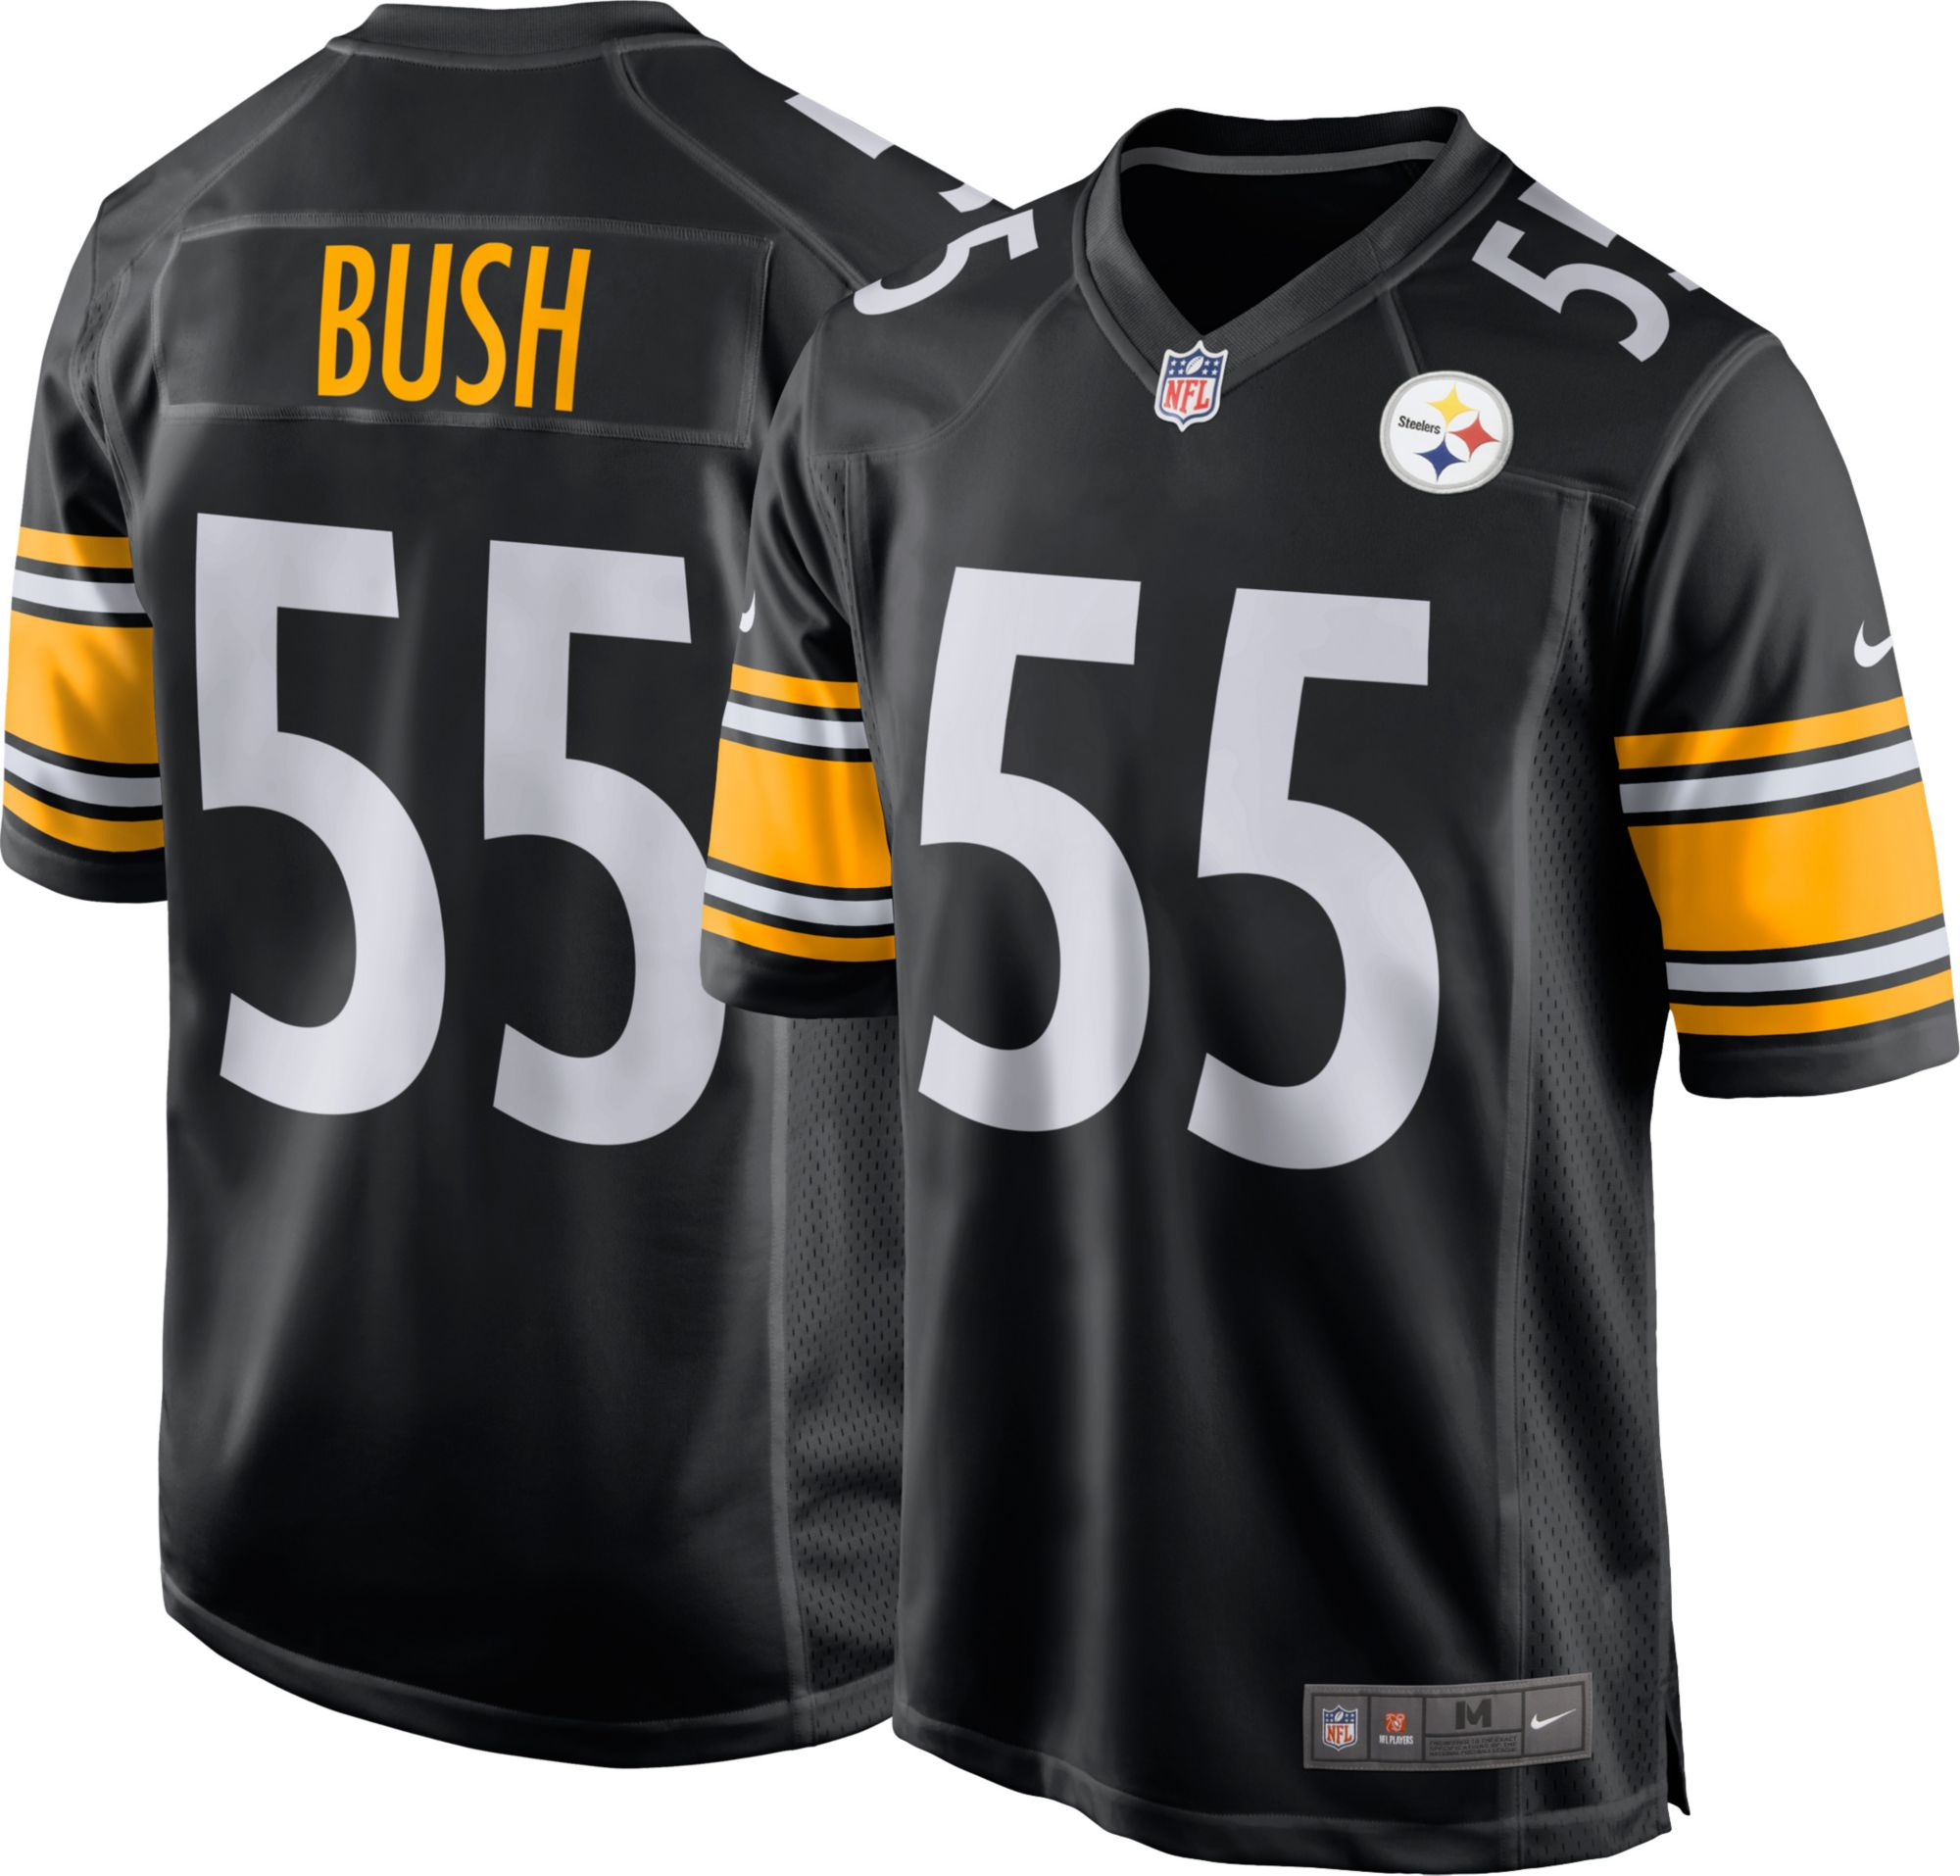 ba23514e5 Devin Bush #55 Nike Men's Pittsburgh Steelers Home Game Jersey ...